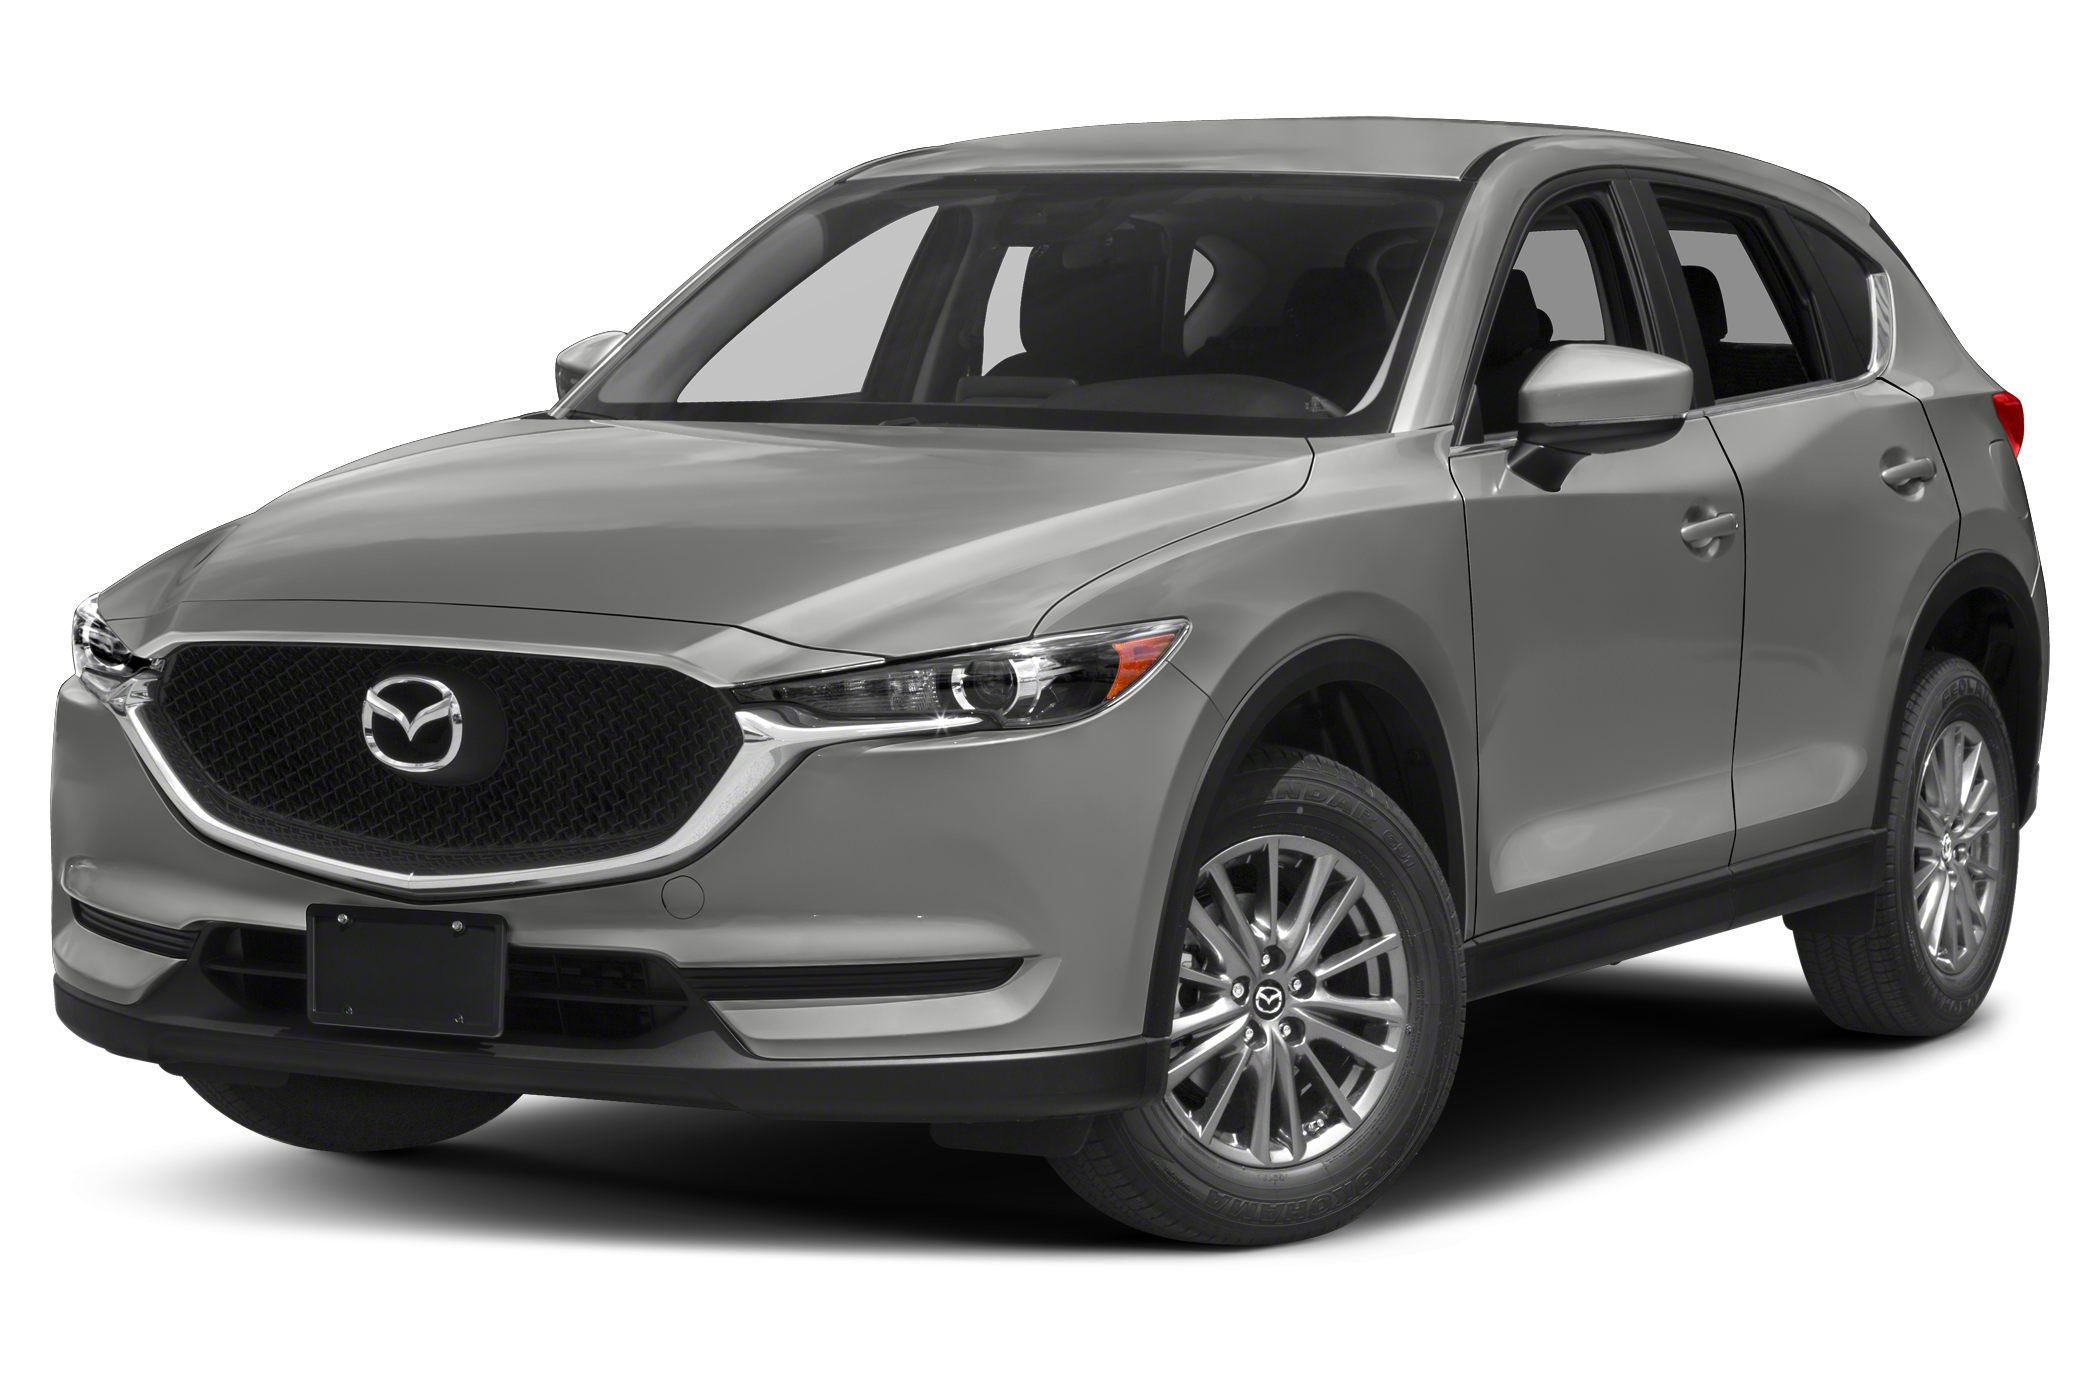 2018 mazda cx 5 spied testing in southern california. Black Bedroom Furniture Sets. Home Design Ideas